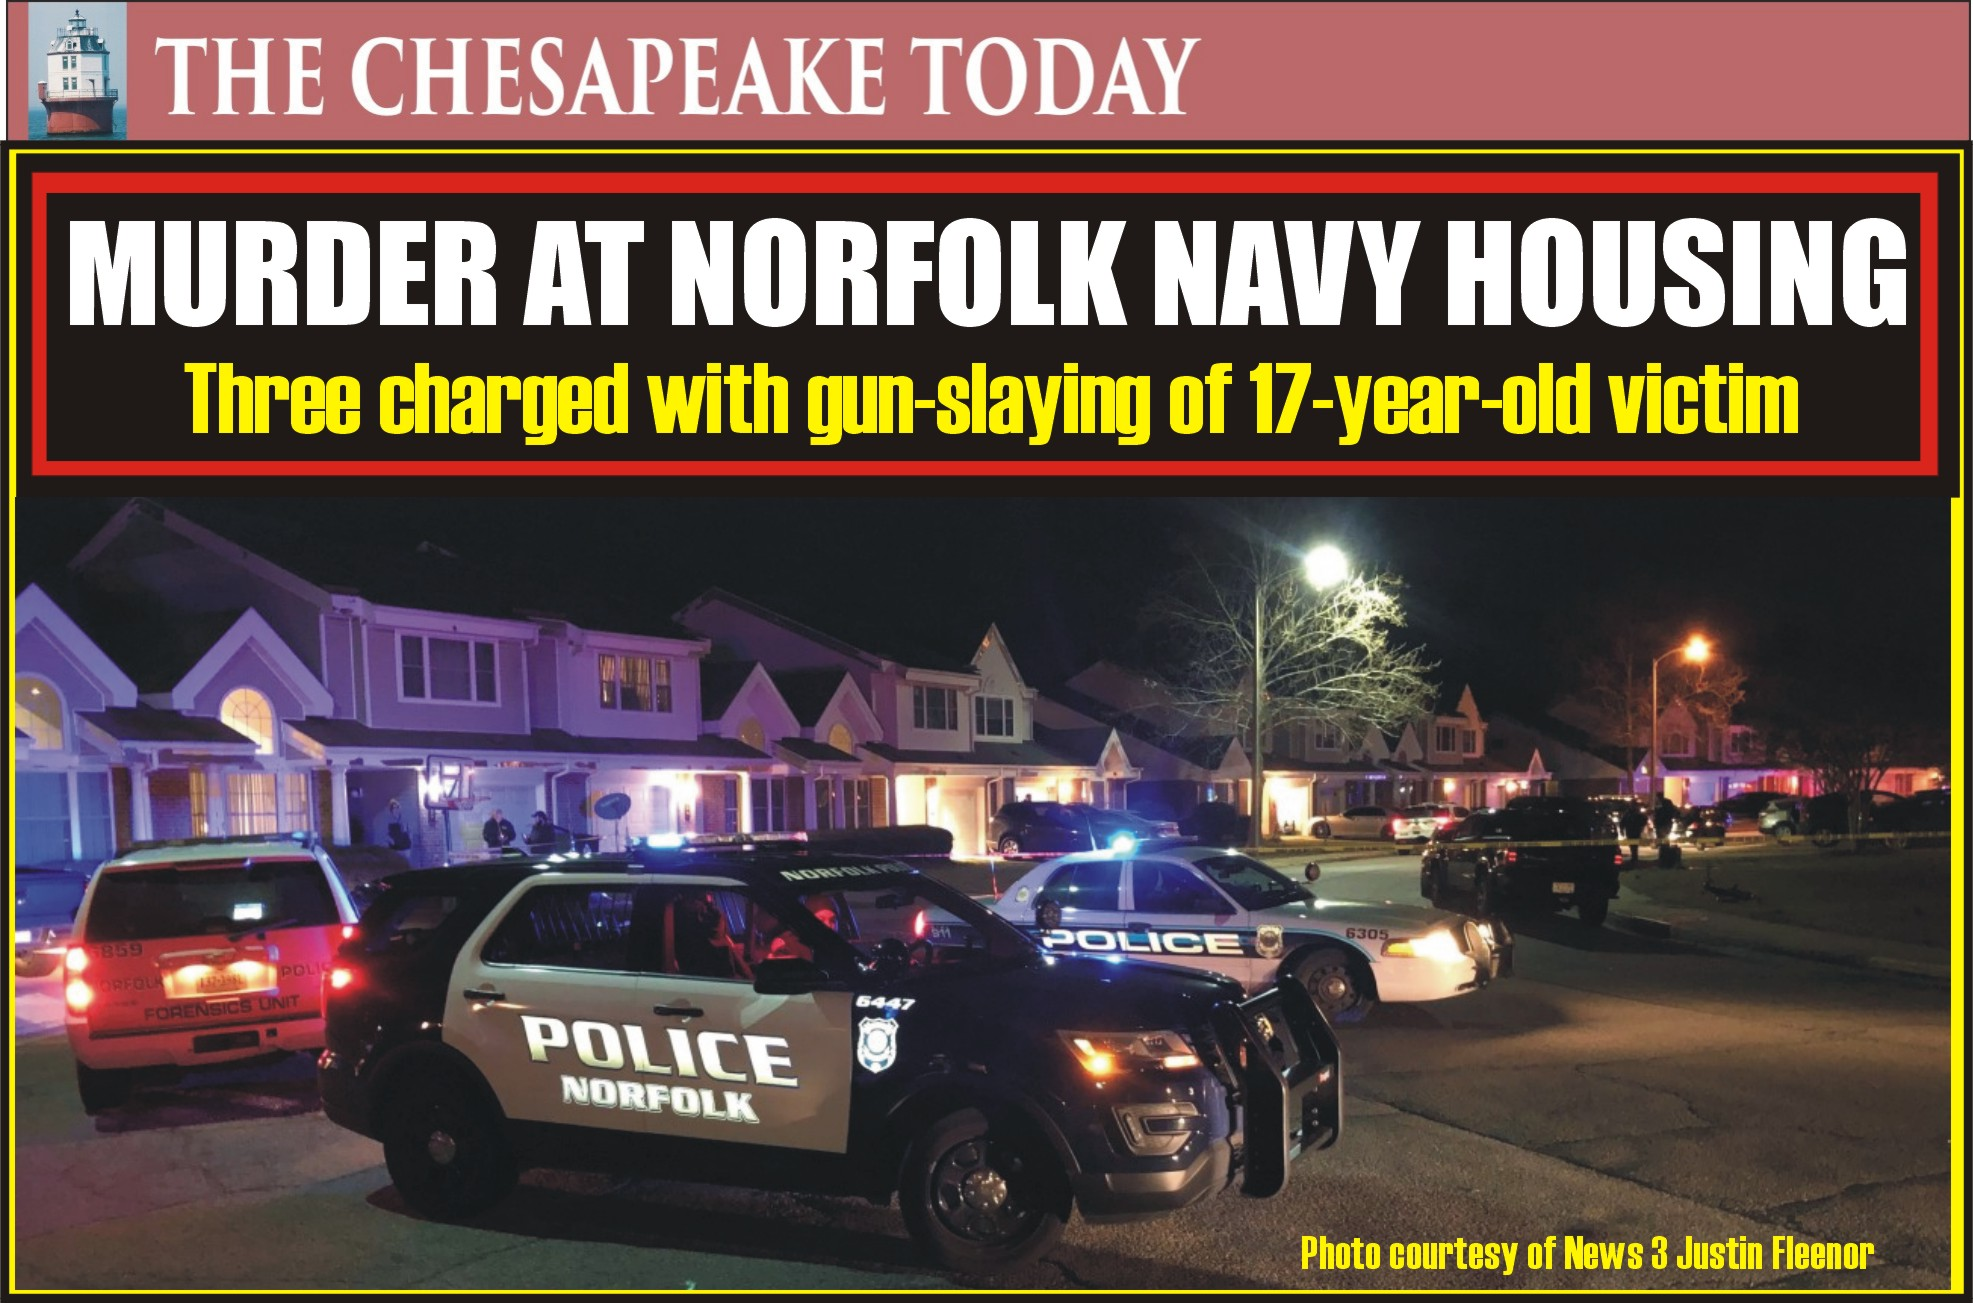 MURDER USA: Rahzell Washington, Quataisia Thompson, and Sarah Bowen arrested in connection to the homicide of teenager at Norfolk Navy Housing Center